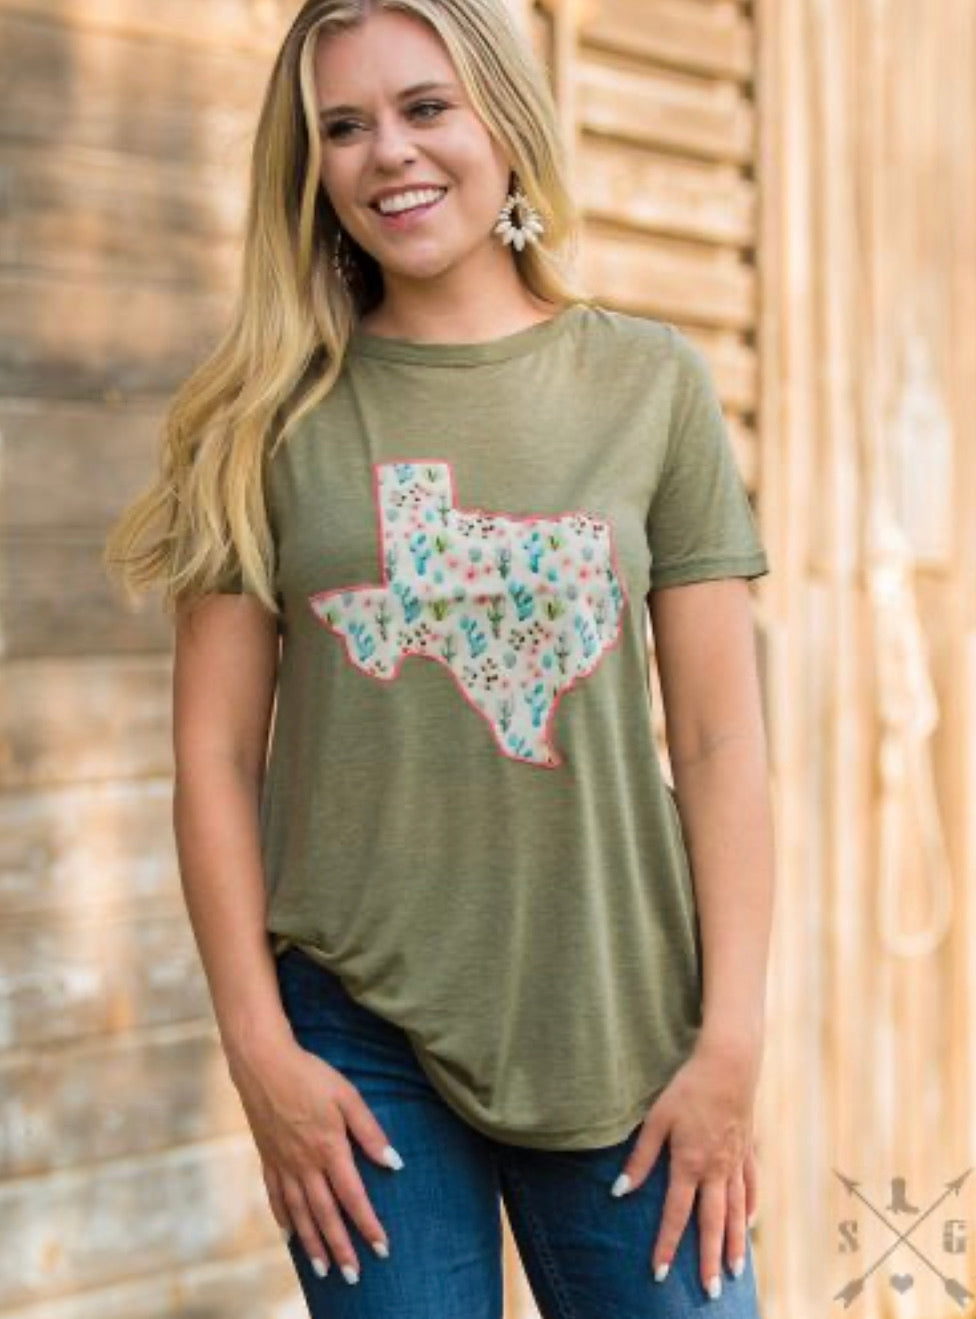 Olive cactus Texas T-shirt